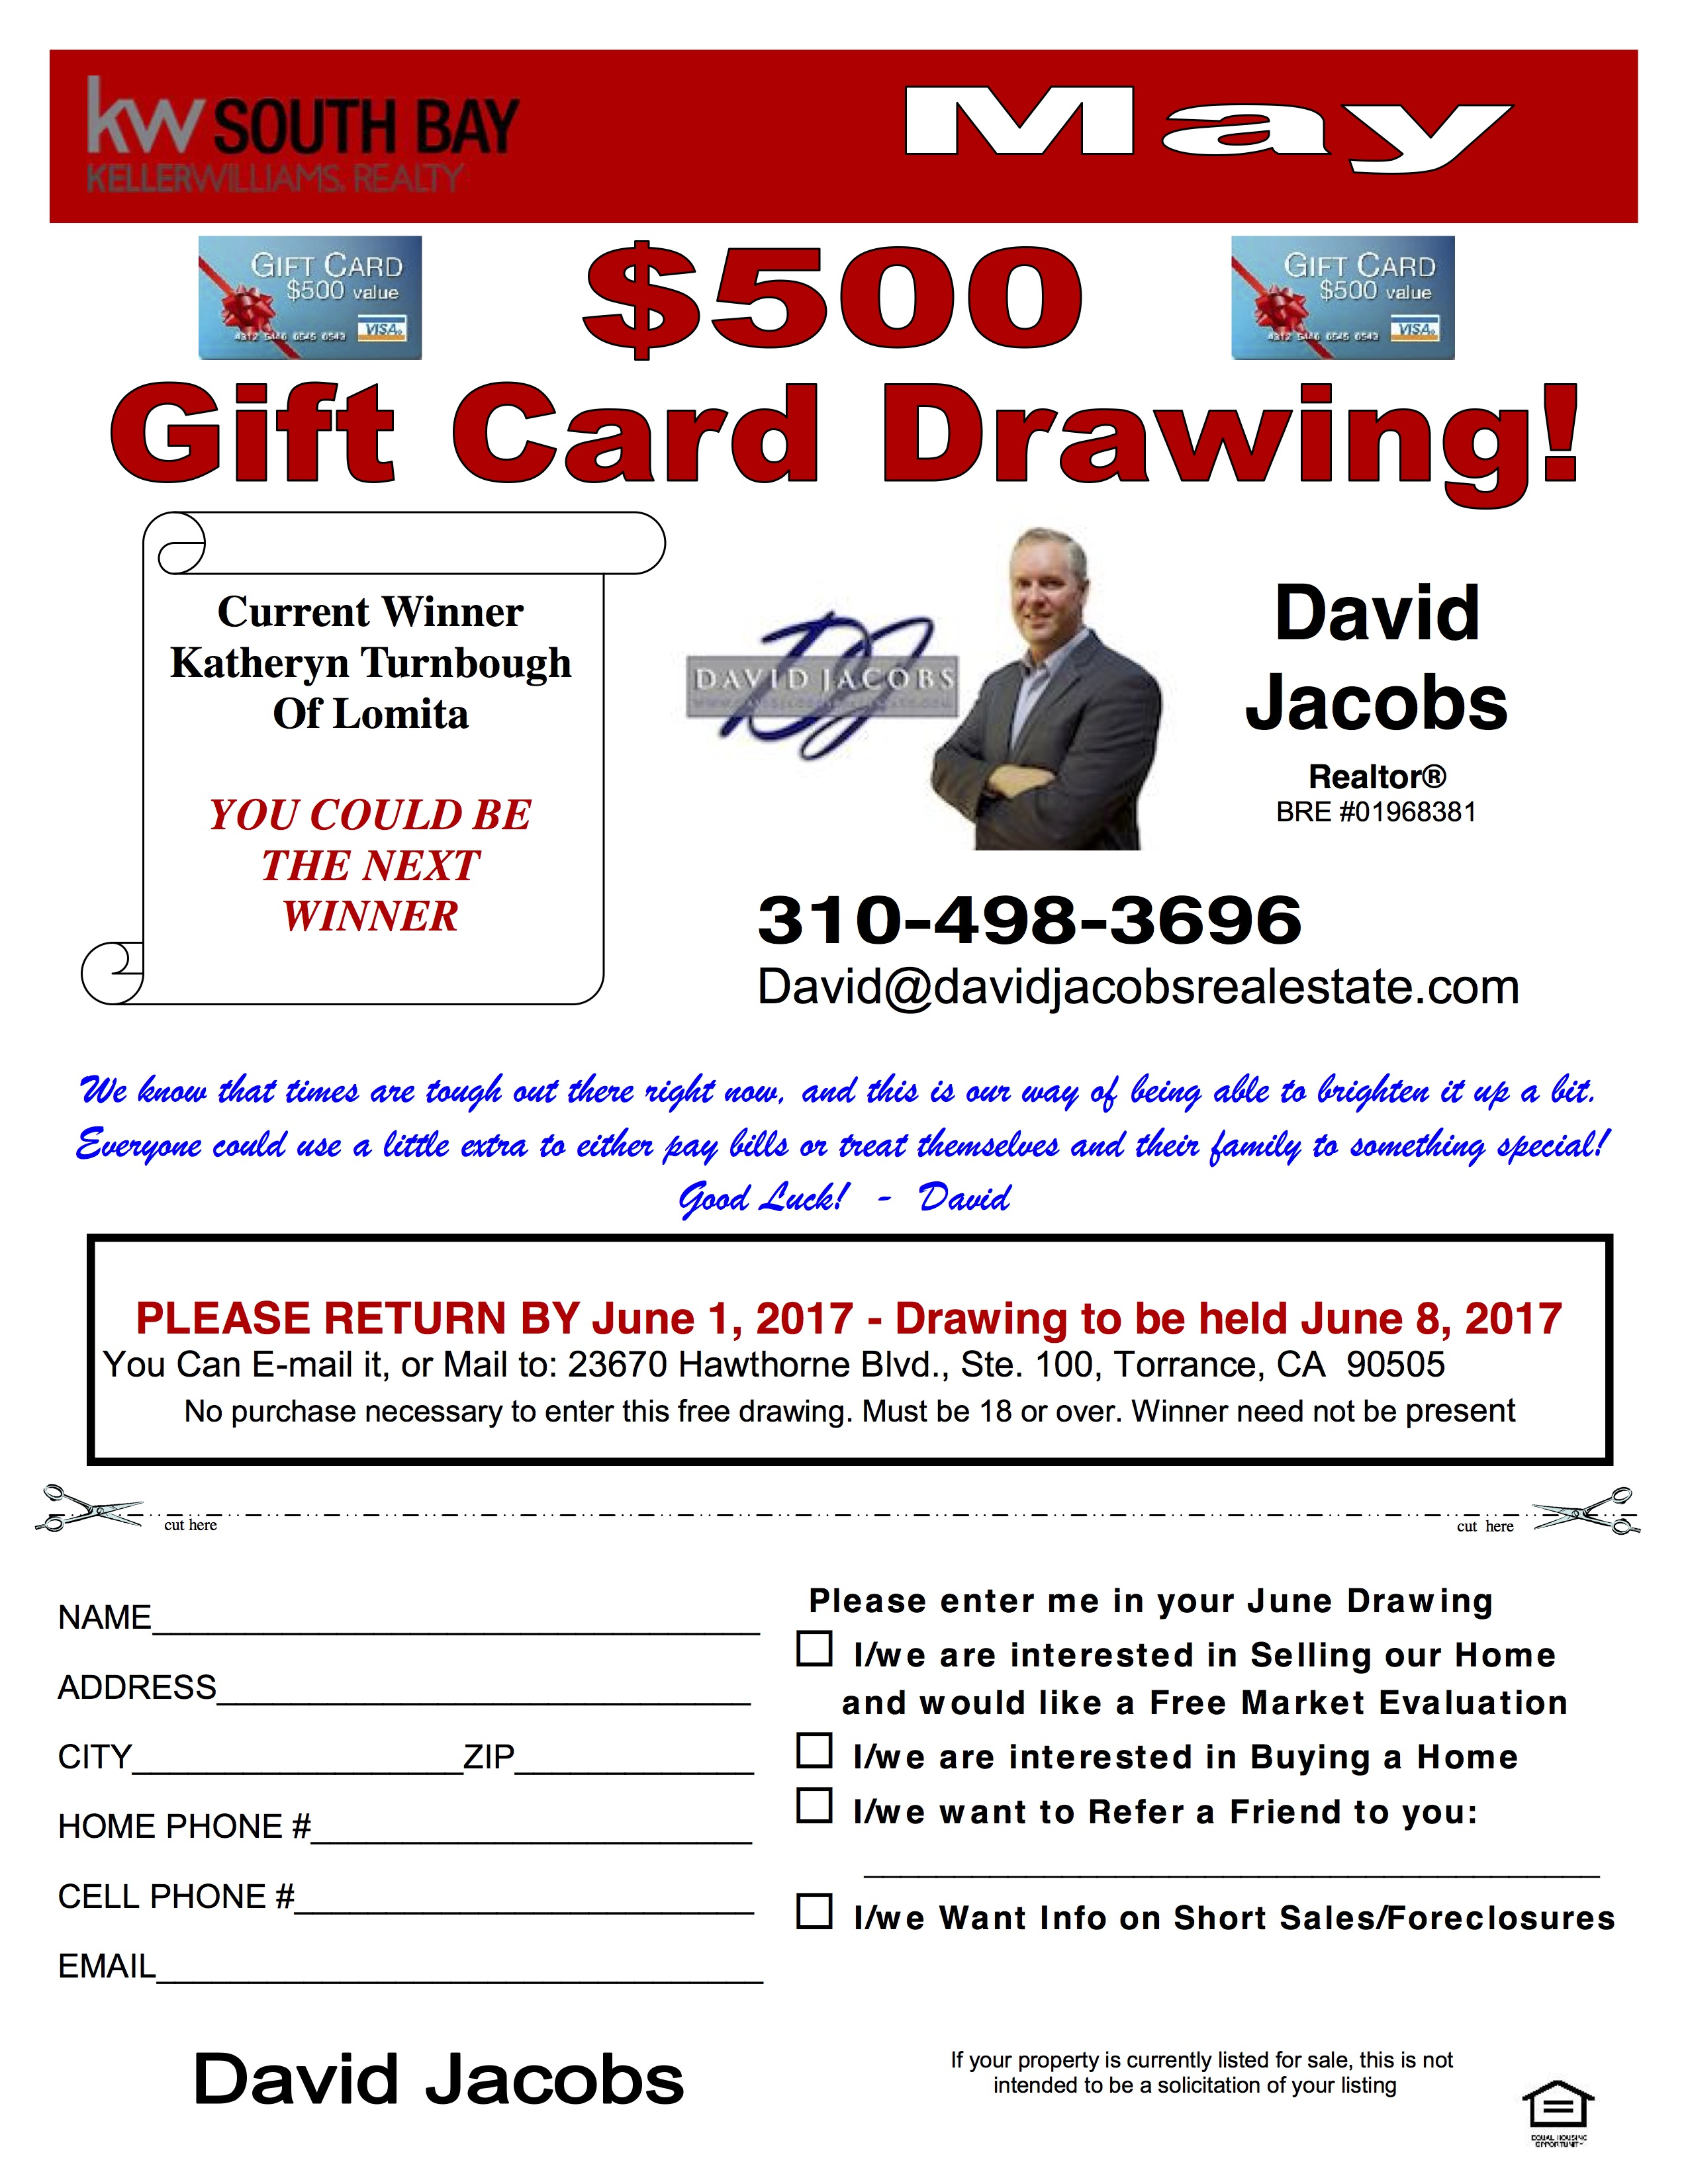 Gift Card Drawing David Jacobs Real Estate